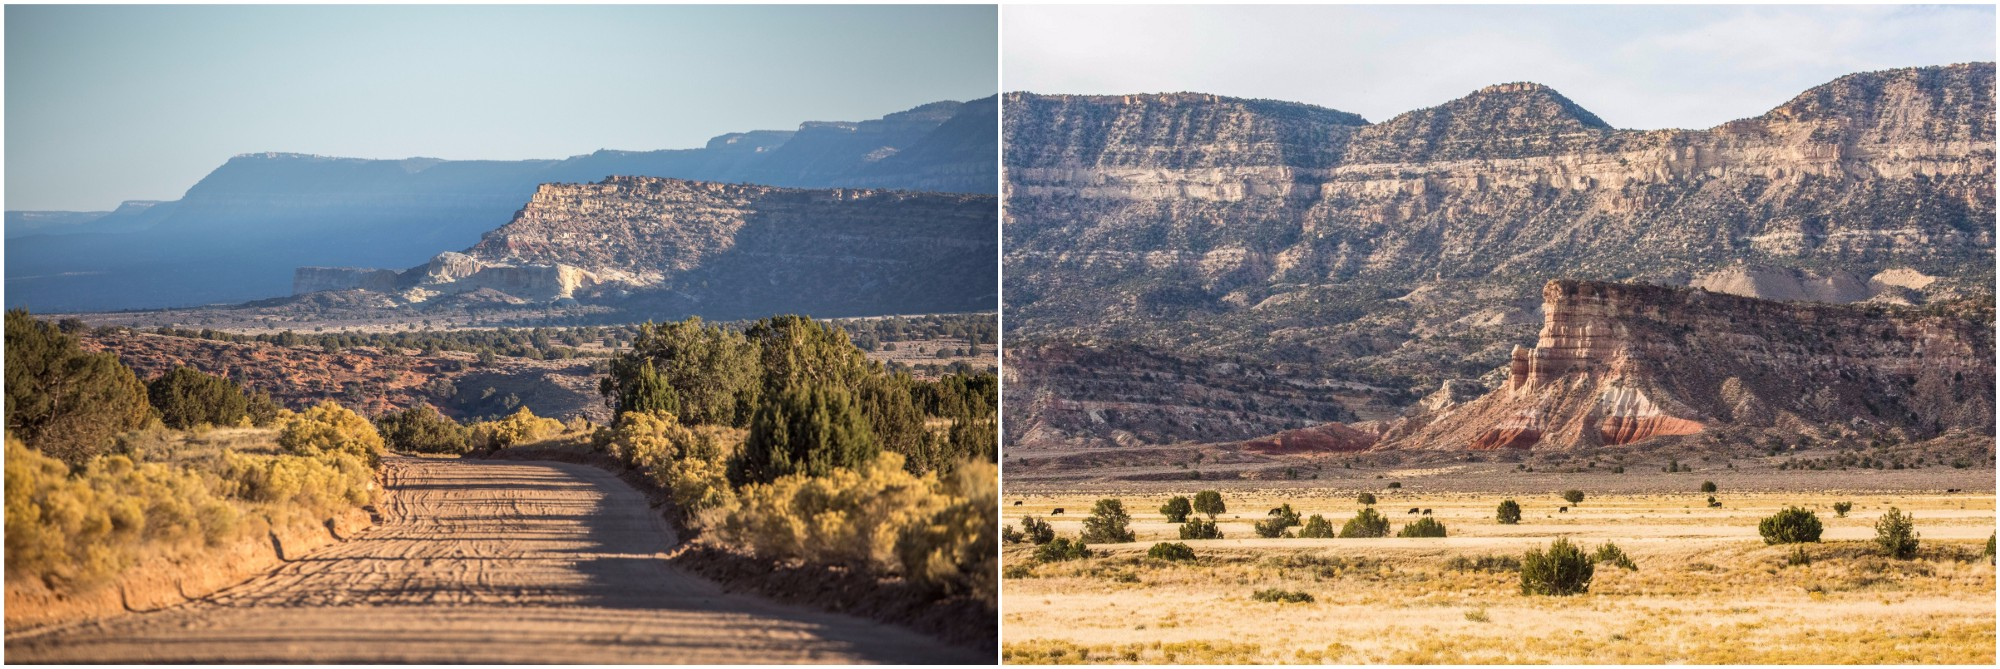 - Left: The 57 miles Hole-in-the-Rock Scenic Backway, which was excluded from the national monument in the current presidential plans. Garfield county is working now with the BLM to improve the state of the road and make it more drivable, as it is constantly damaged by rains and heavy use. Right: The Straight Cliffs, at the edge of the Kaiparowits Plateau. Cows can be seen dotting the landscape, as grazing is allowed in the national monument. The region of the Kaiparowits formation has become in the past two decades one of the best places on the planet for finding dinosaur fossils from the late Cretaceous Era when an asteroid hit the Earth. At least 12 new dinosaur species were discovered in the monument in the last decade and a half. Parts of the Kaiparowits Plateau also contain important coal resources and were carved out of the monument in the president's proposal.